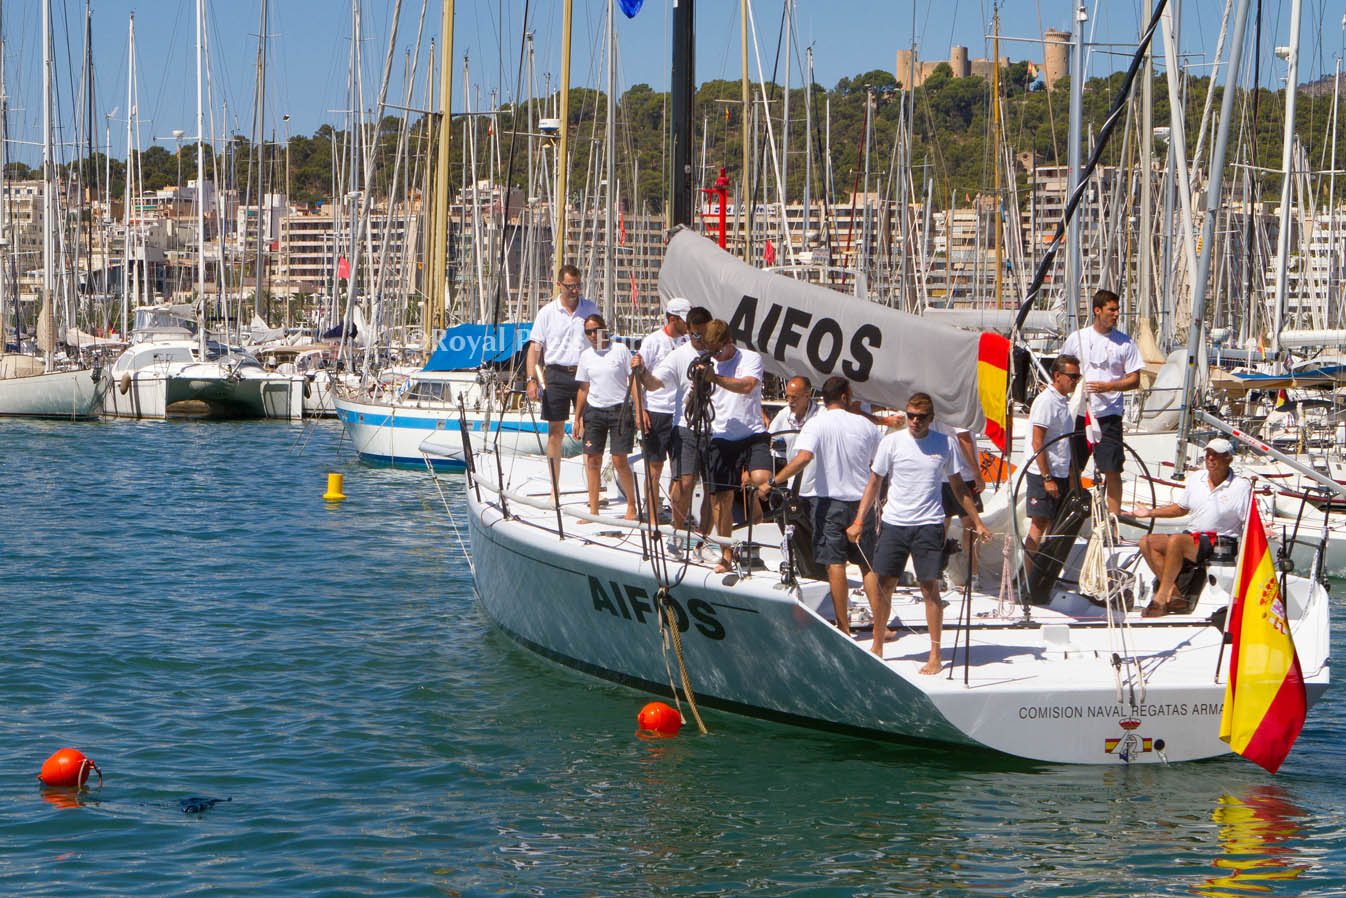 Crown Prince Felipe of Spain at Sailing Match in Mallorca